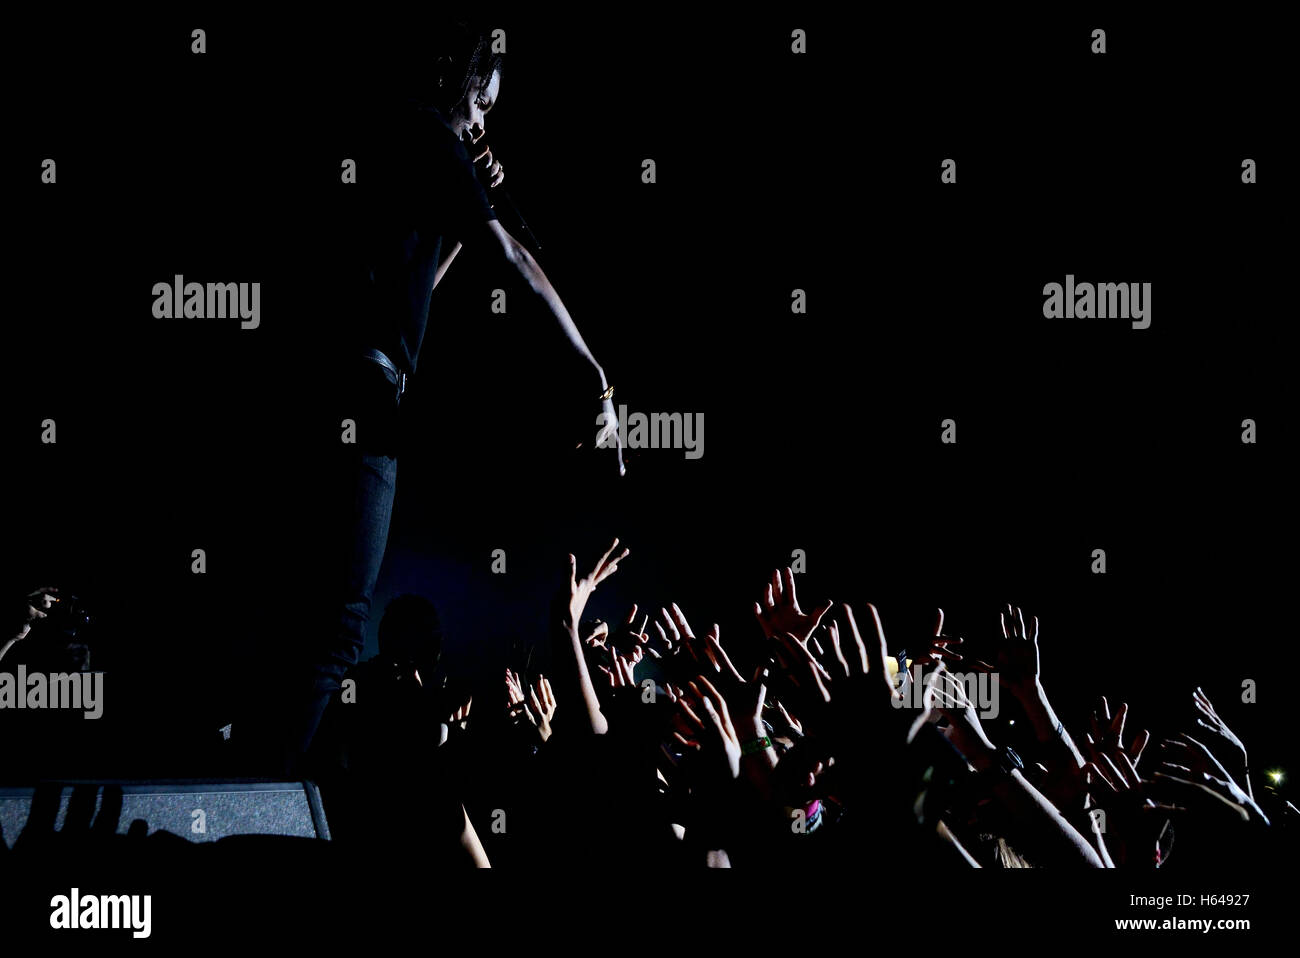 Kanye West And Asap Rocky Stock Photos & Kanye West And Asap Rocky ...